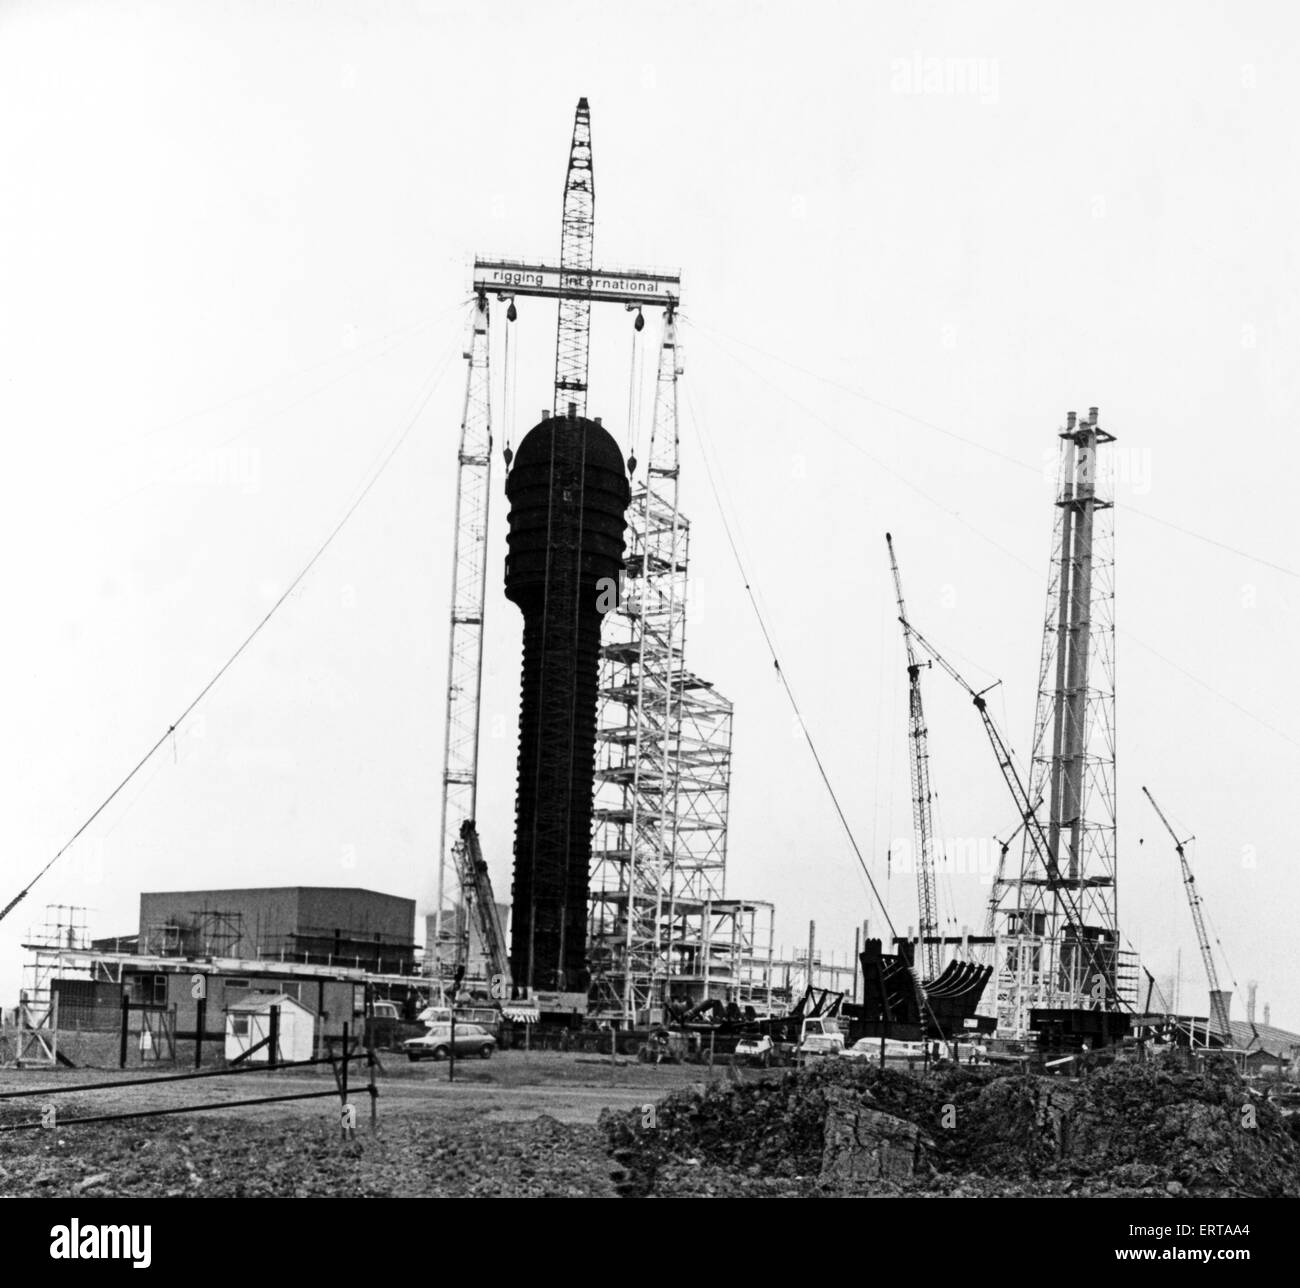 ICI, Billingham. On the left is the 200 foot long steel fermenter in position at the ¿40 million Pruteen plant, - Stock Image